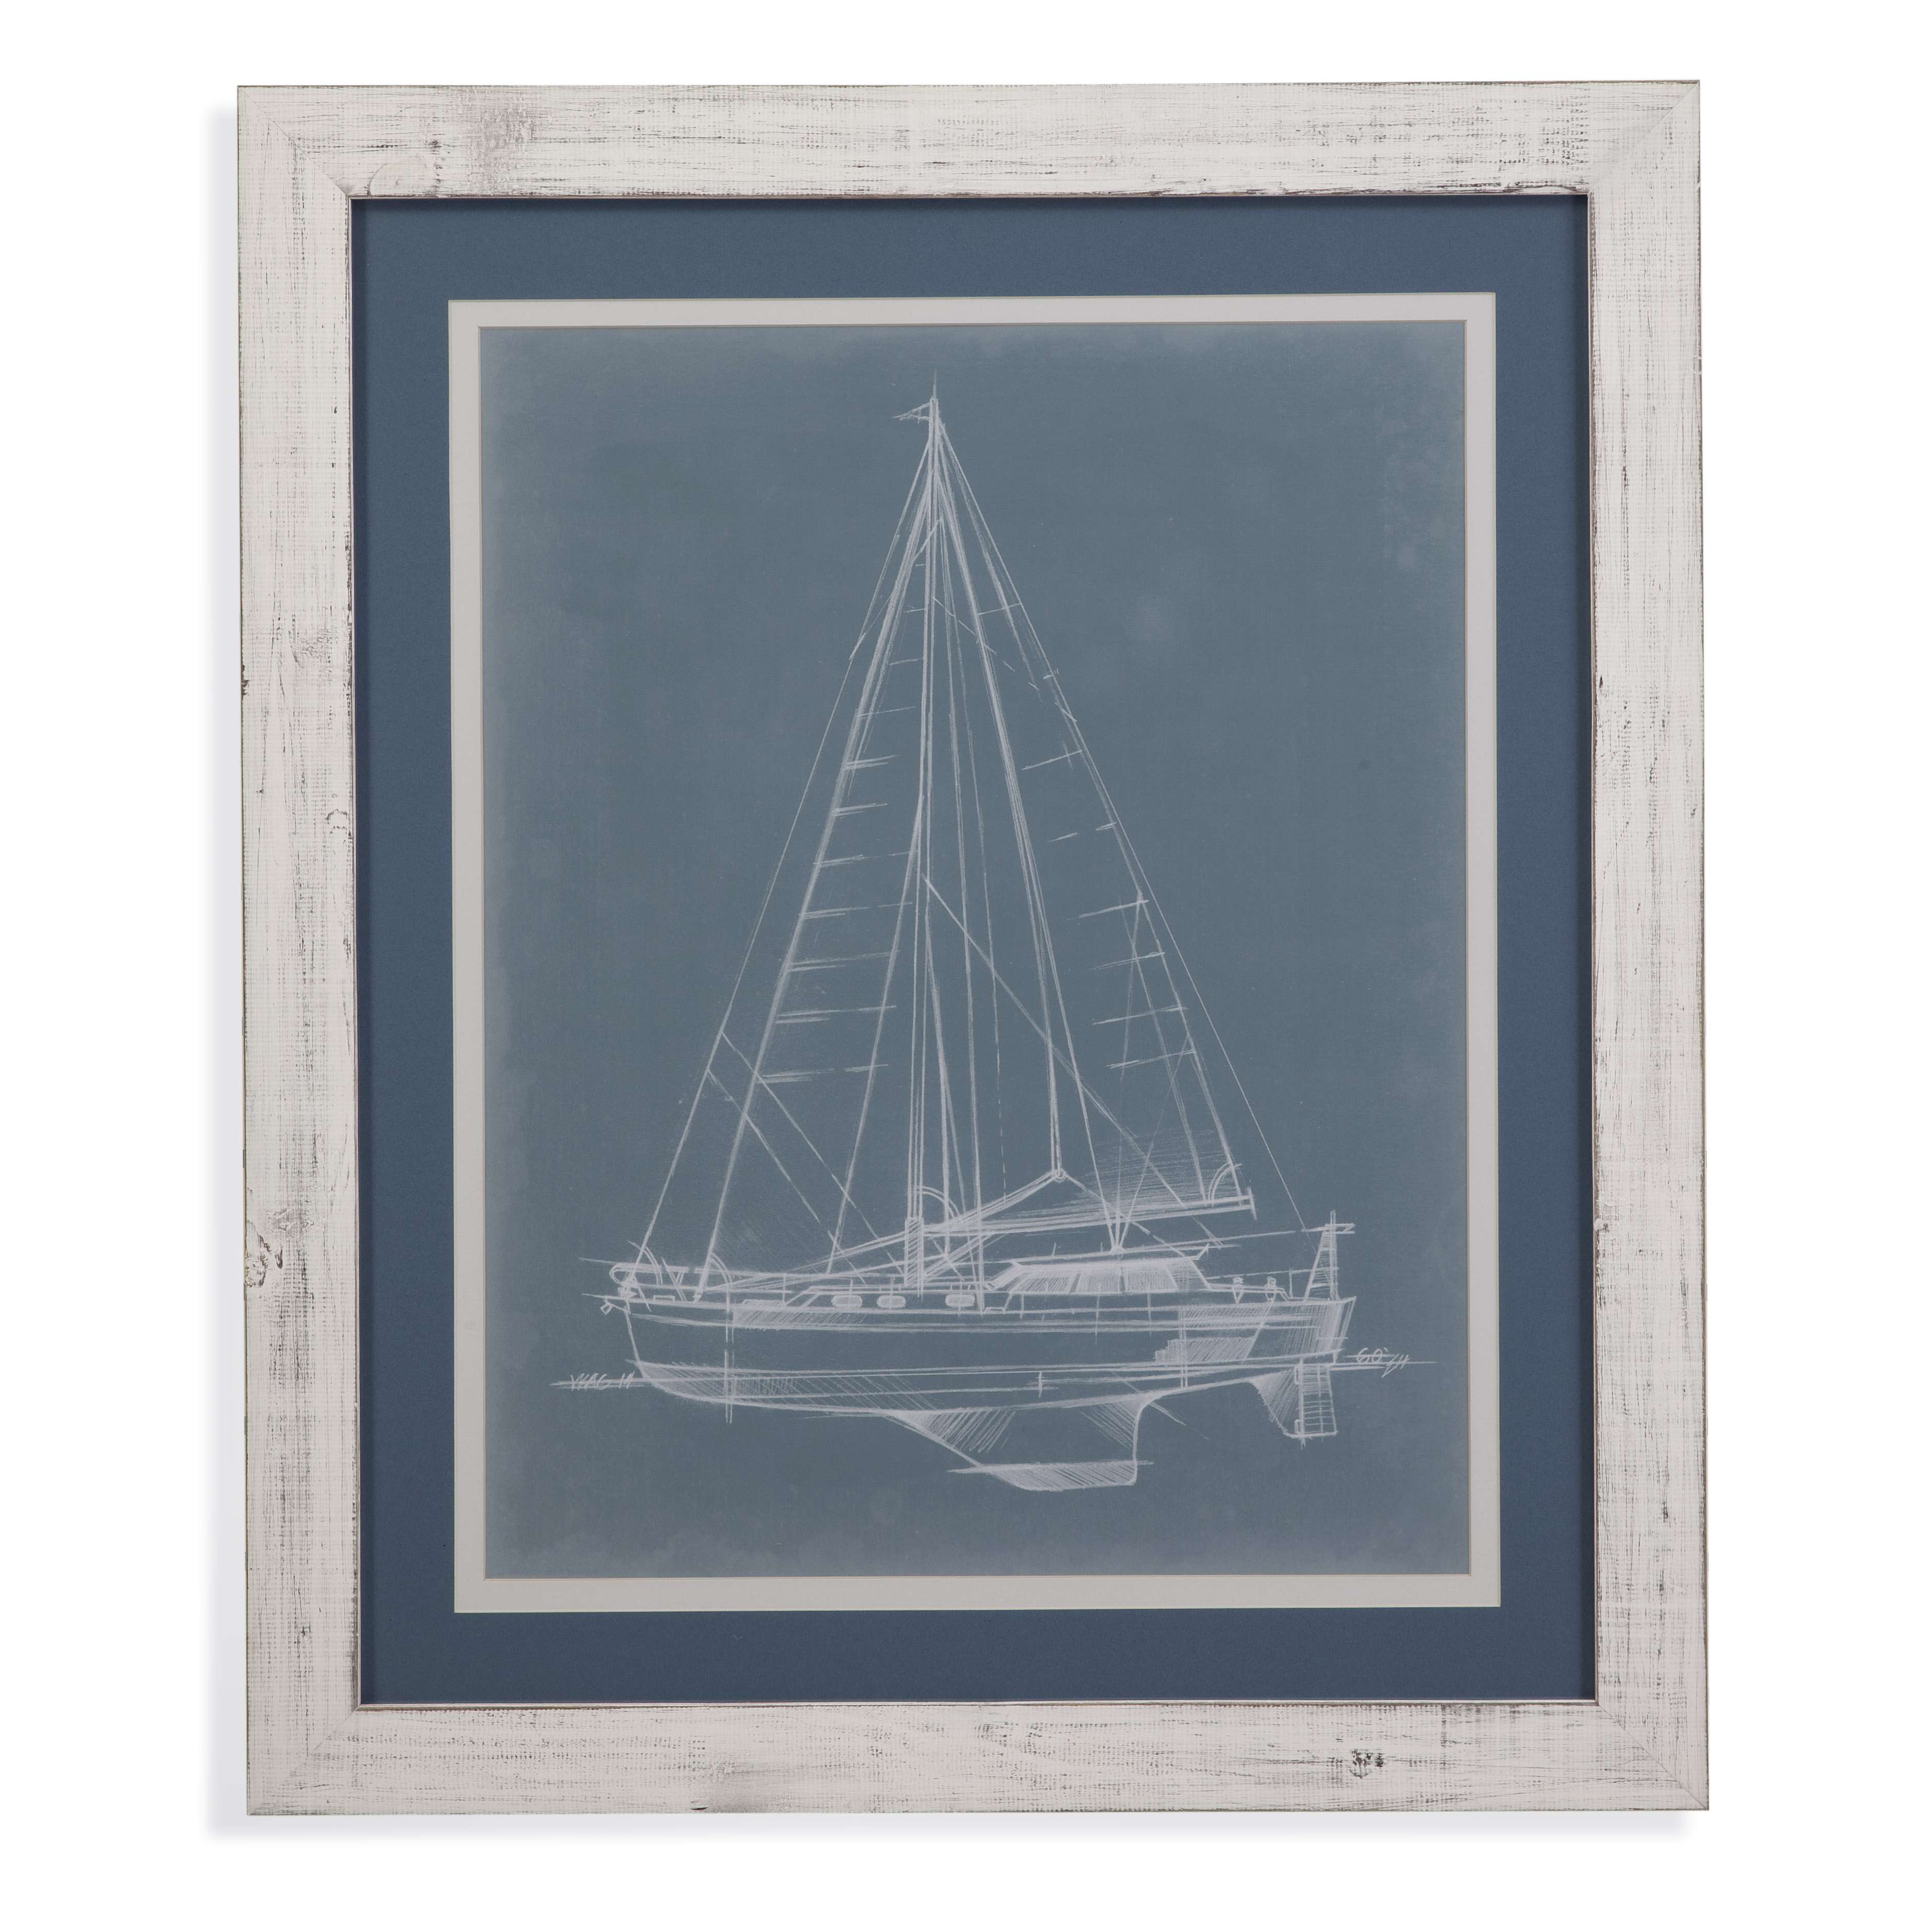 Pan Pacific Yacht Sketches I by Bassett Mirror at Nassau Furniture and Mattress